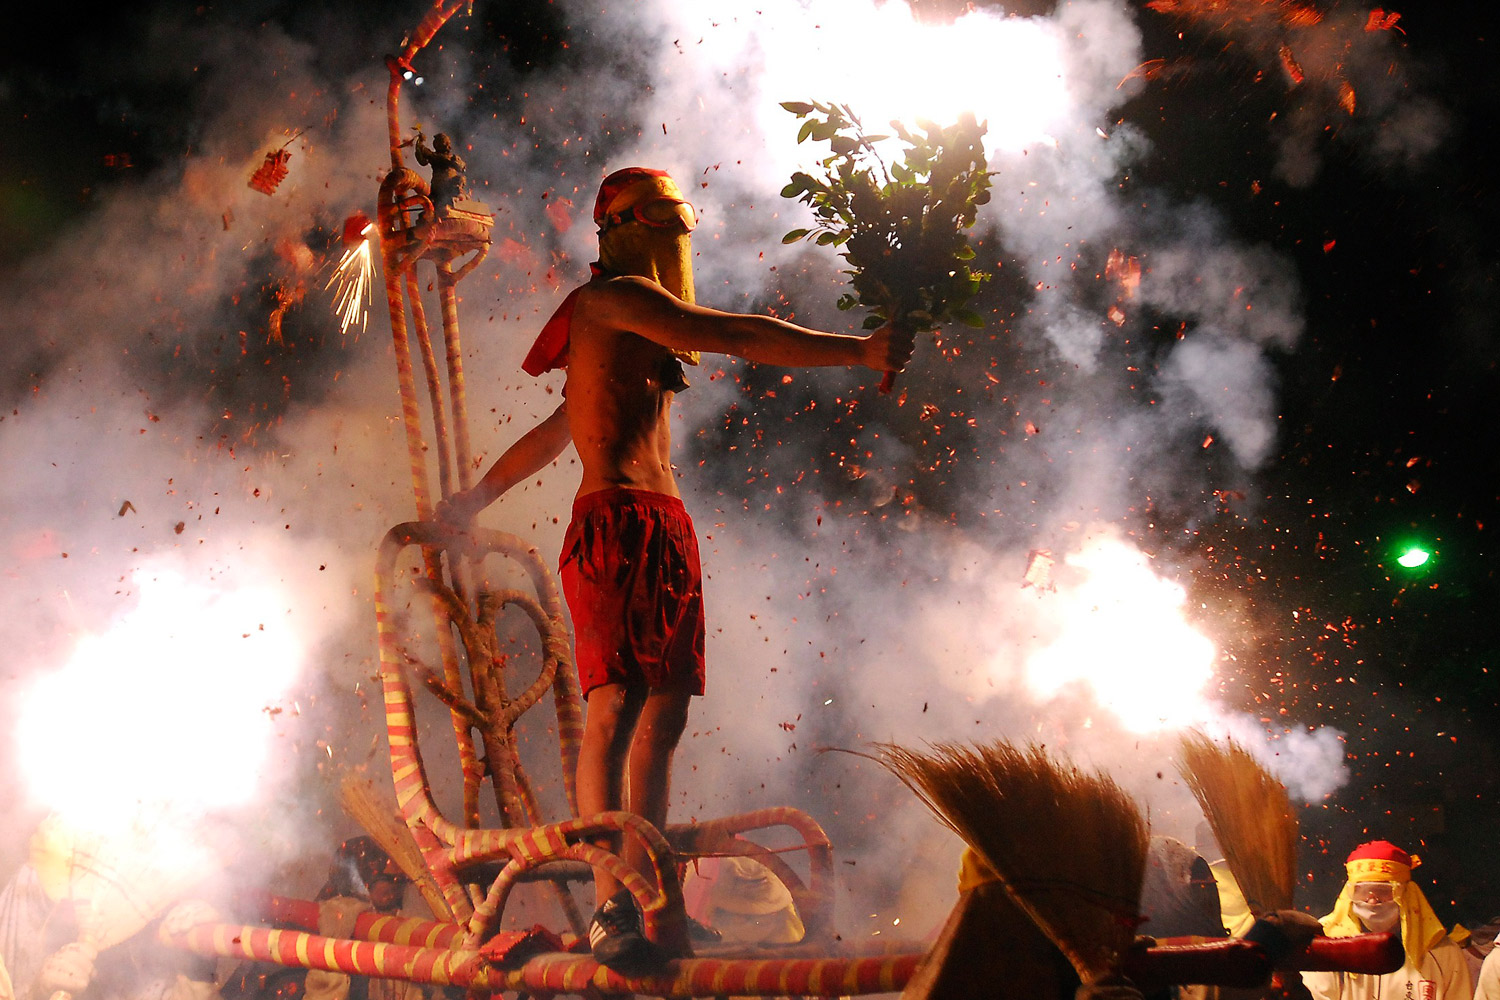 February 6, 2012. Worshippers throw firecrackers at a shirtless man acting as Master Handan during the Handan ritual as part of the Chinese Lantern Festival celebrations or  Yuan Hsiao Jie  in Taitung, eastern Taiwan.